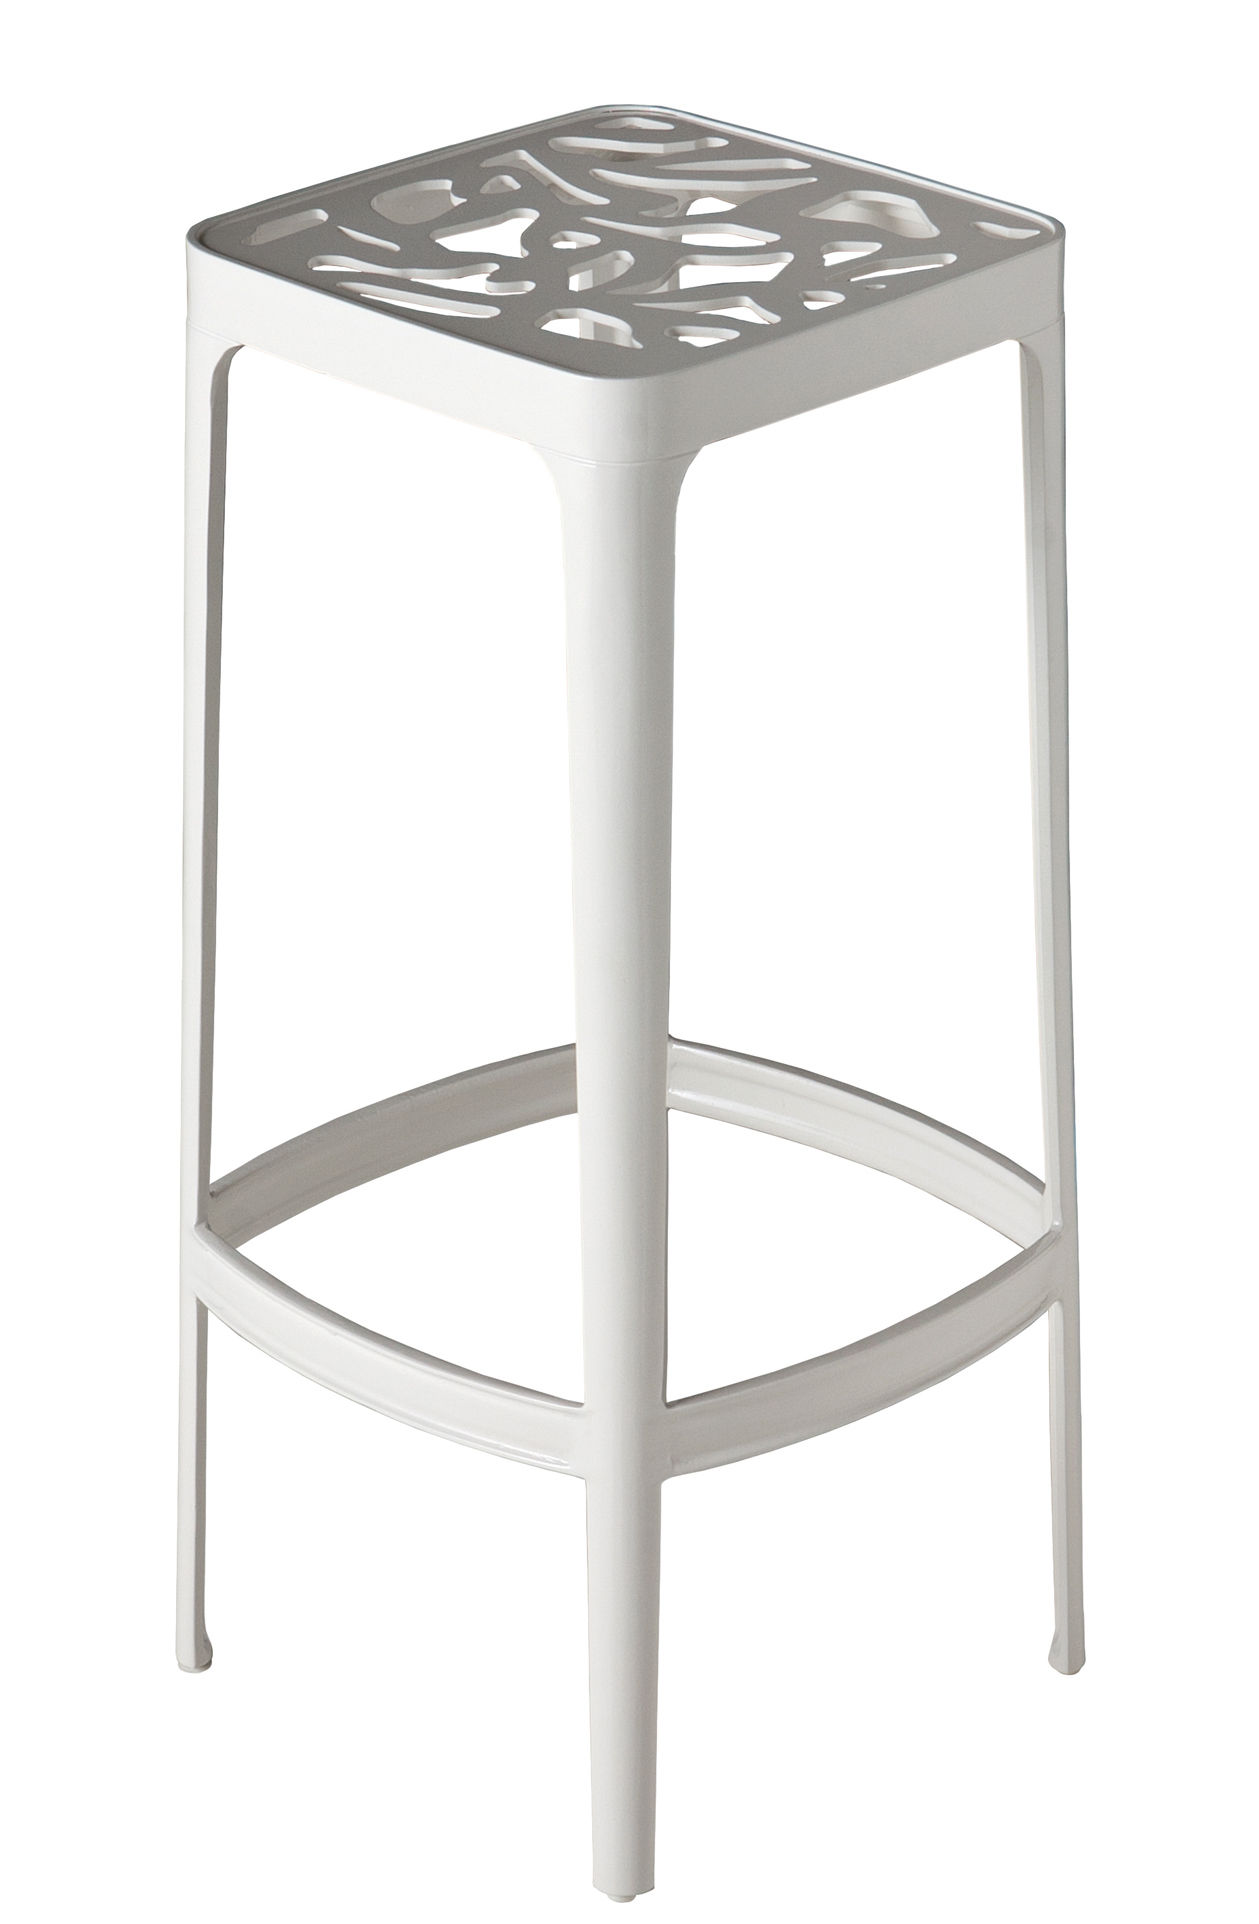 Petite madeleine bar stool h 78 cm metal white by driade - Madeleine bar stool ...